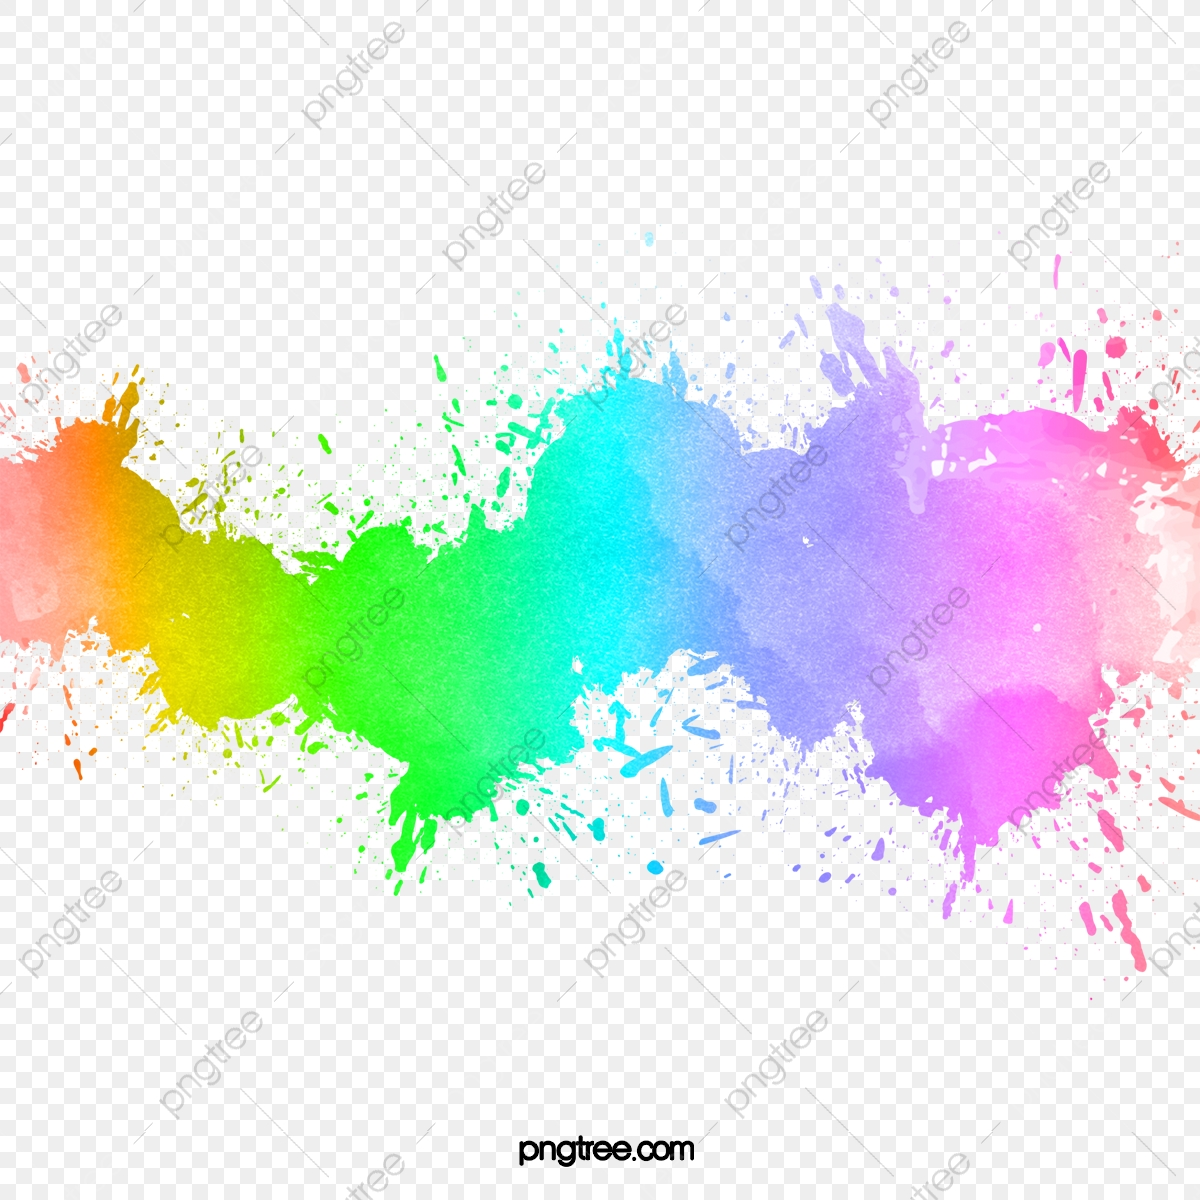 Water Color Ink, Decoration, Water Color PNG Transparent Clipart.